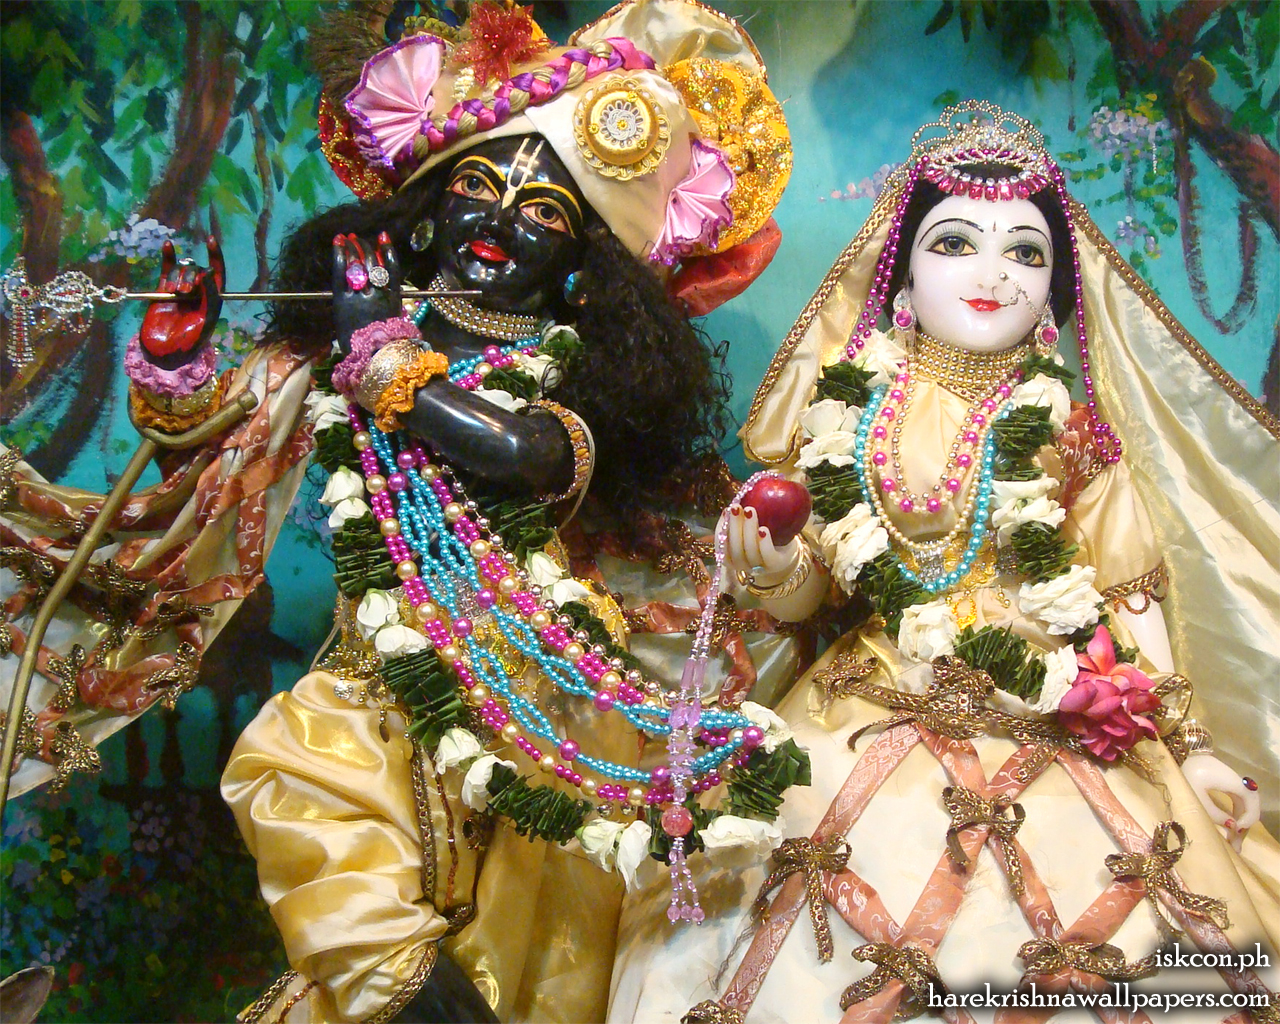 Sri Sri Radha Madhava Close up Wallpaper (010) Size 1280x1024 Download